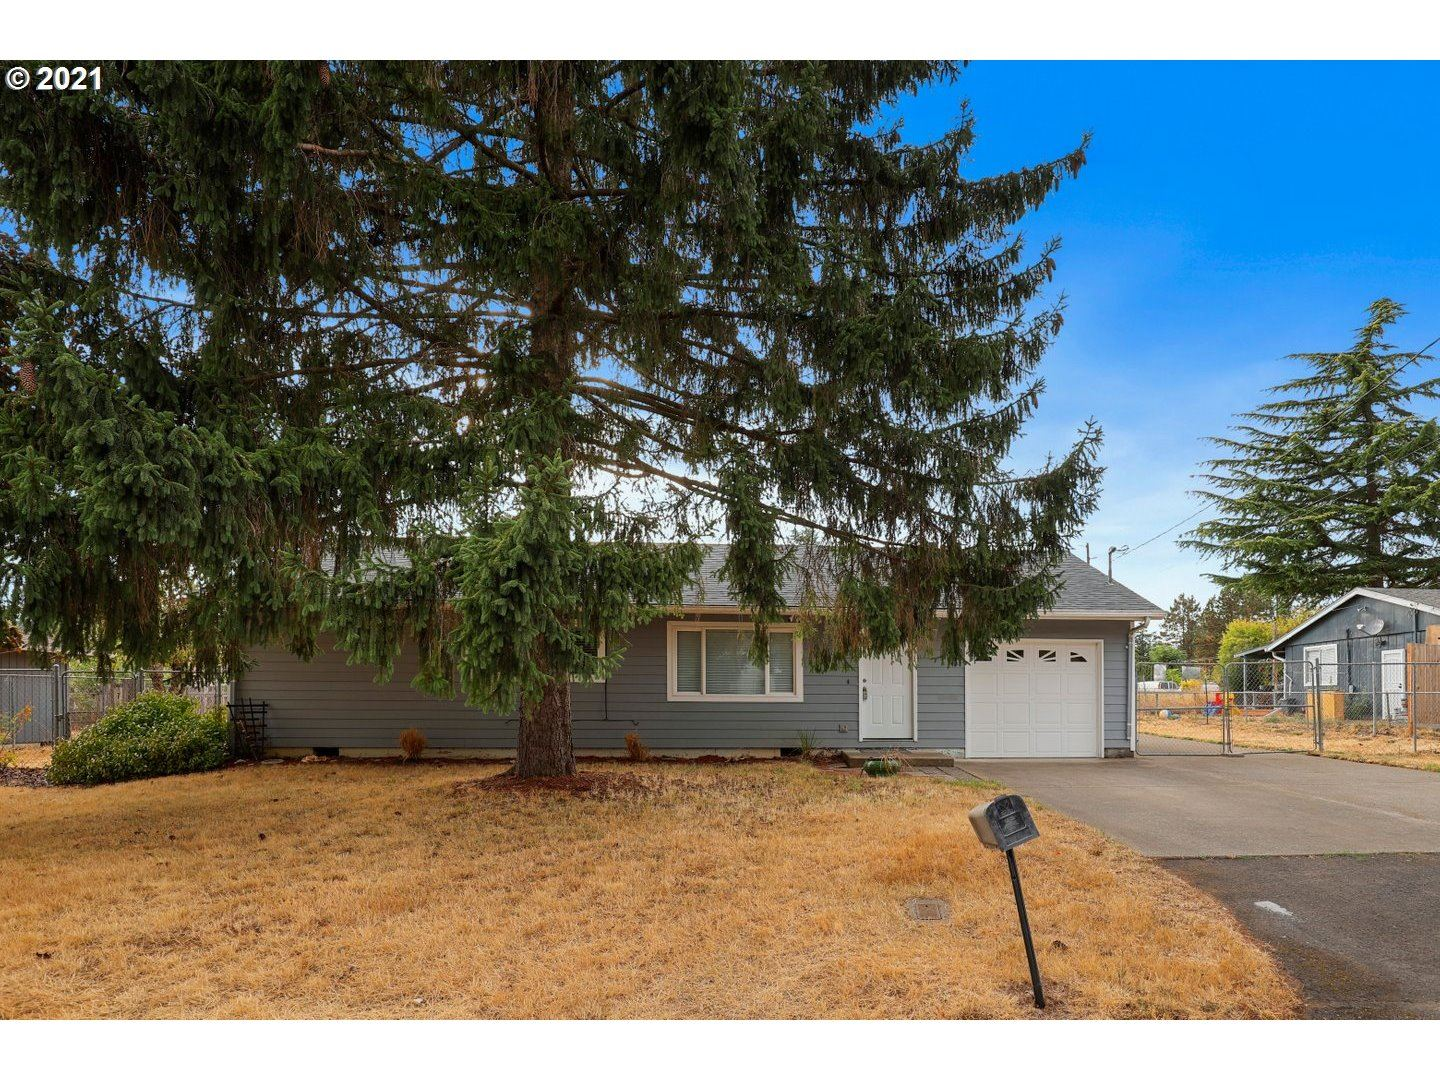 4531 SE 118TH AVE, Portland, OR 97266 - MLS#: 21372081